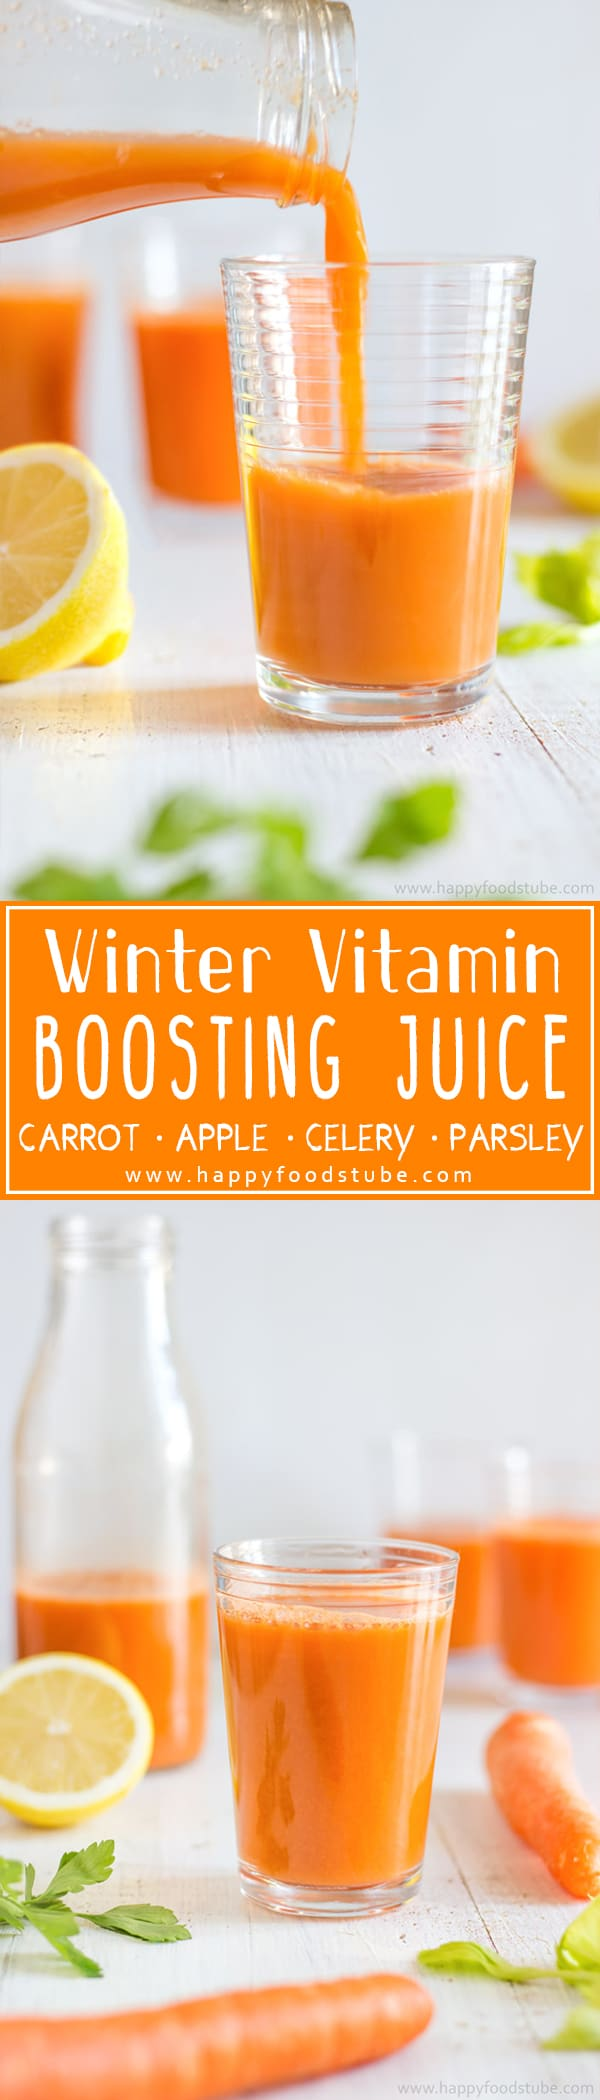 Winter Vitamin Boosting Juice will help you stay healthy throughout cold season. It's homemade, rich in Vitamin C & ready in 5 minutes. Only 5 ingredients - carrot, apple, celery and parsley. #vitaminboosting #juice #recipe #weightloss #healthy #juicing #cleanse #juicer #diet #fresh #homemade #howtomake #cold #vitamin #drinks #vitaminc